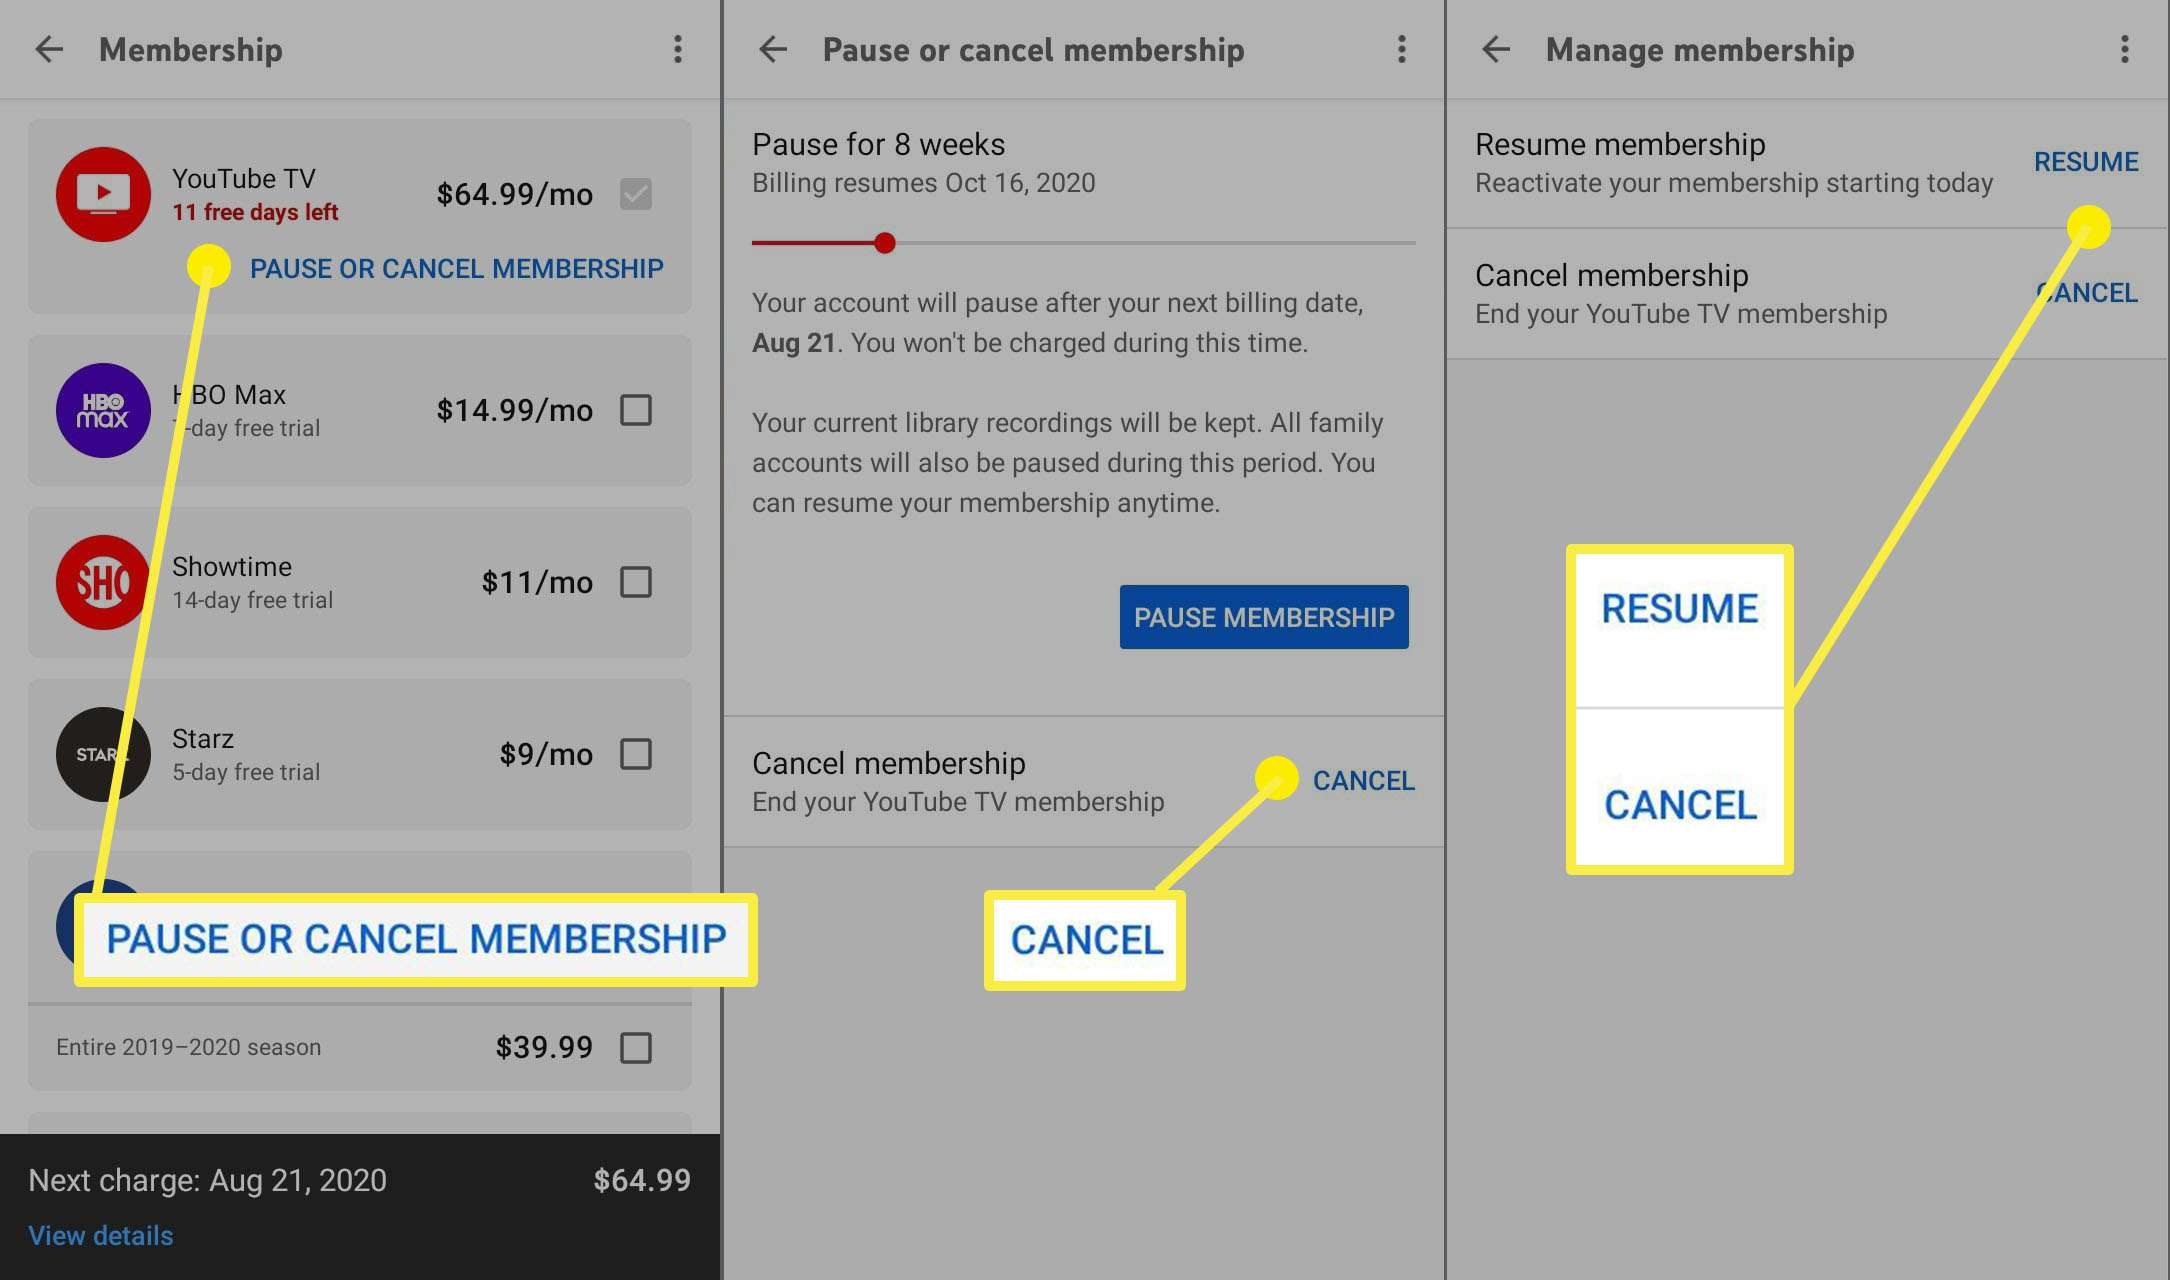 The steps to take to cancel your membership on the YouTube TV mobile app.